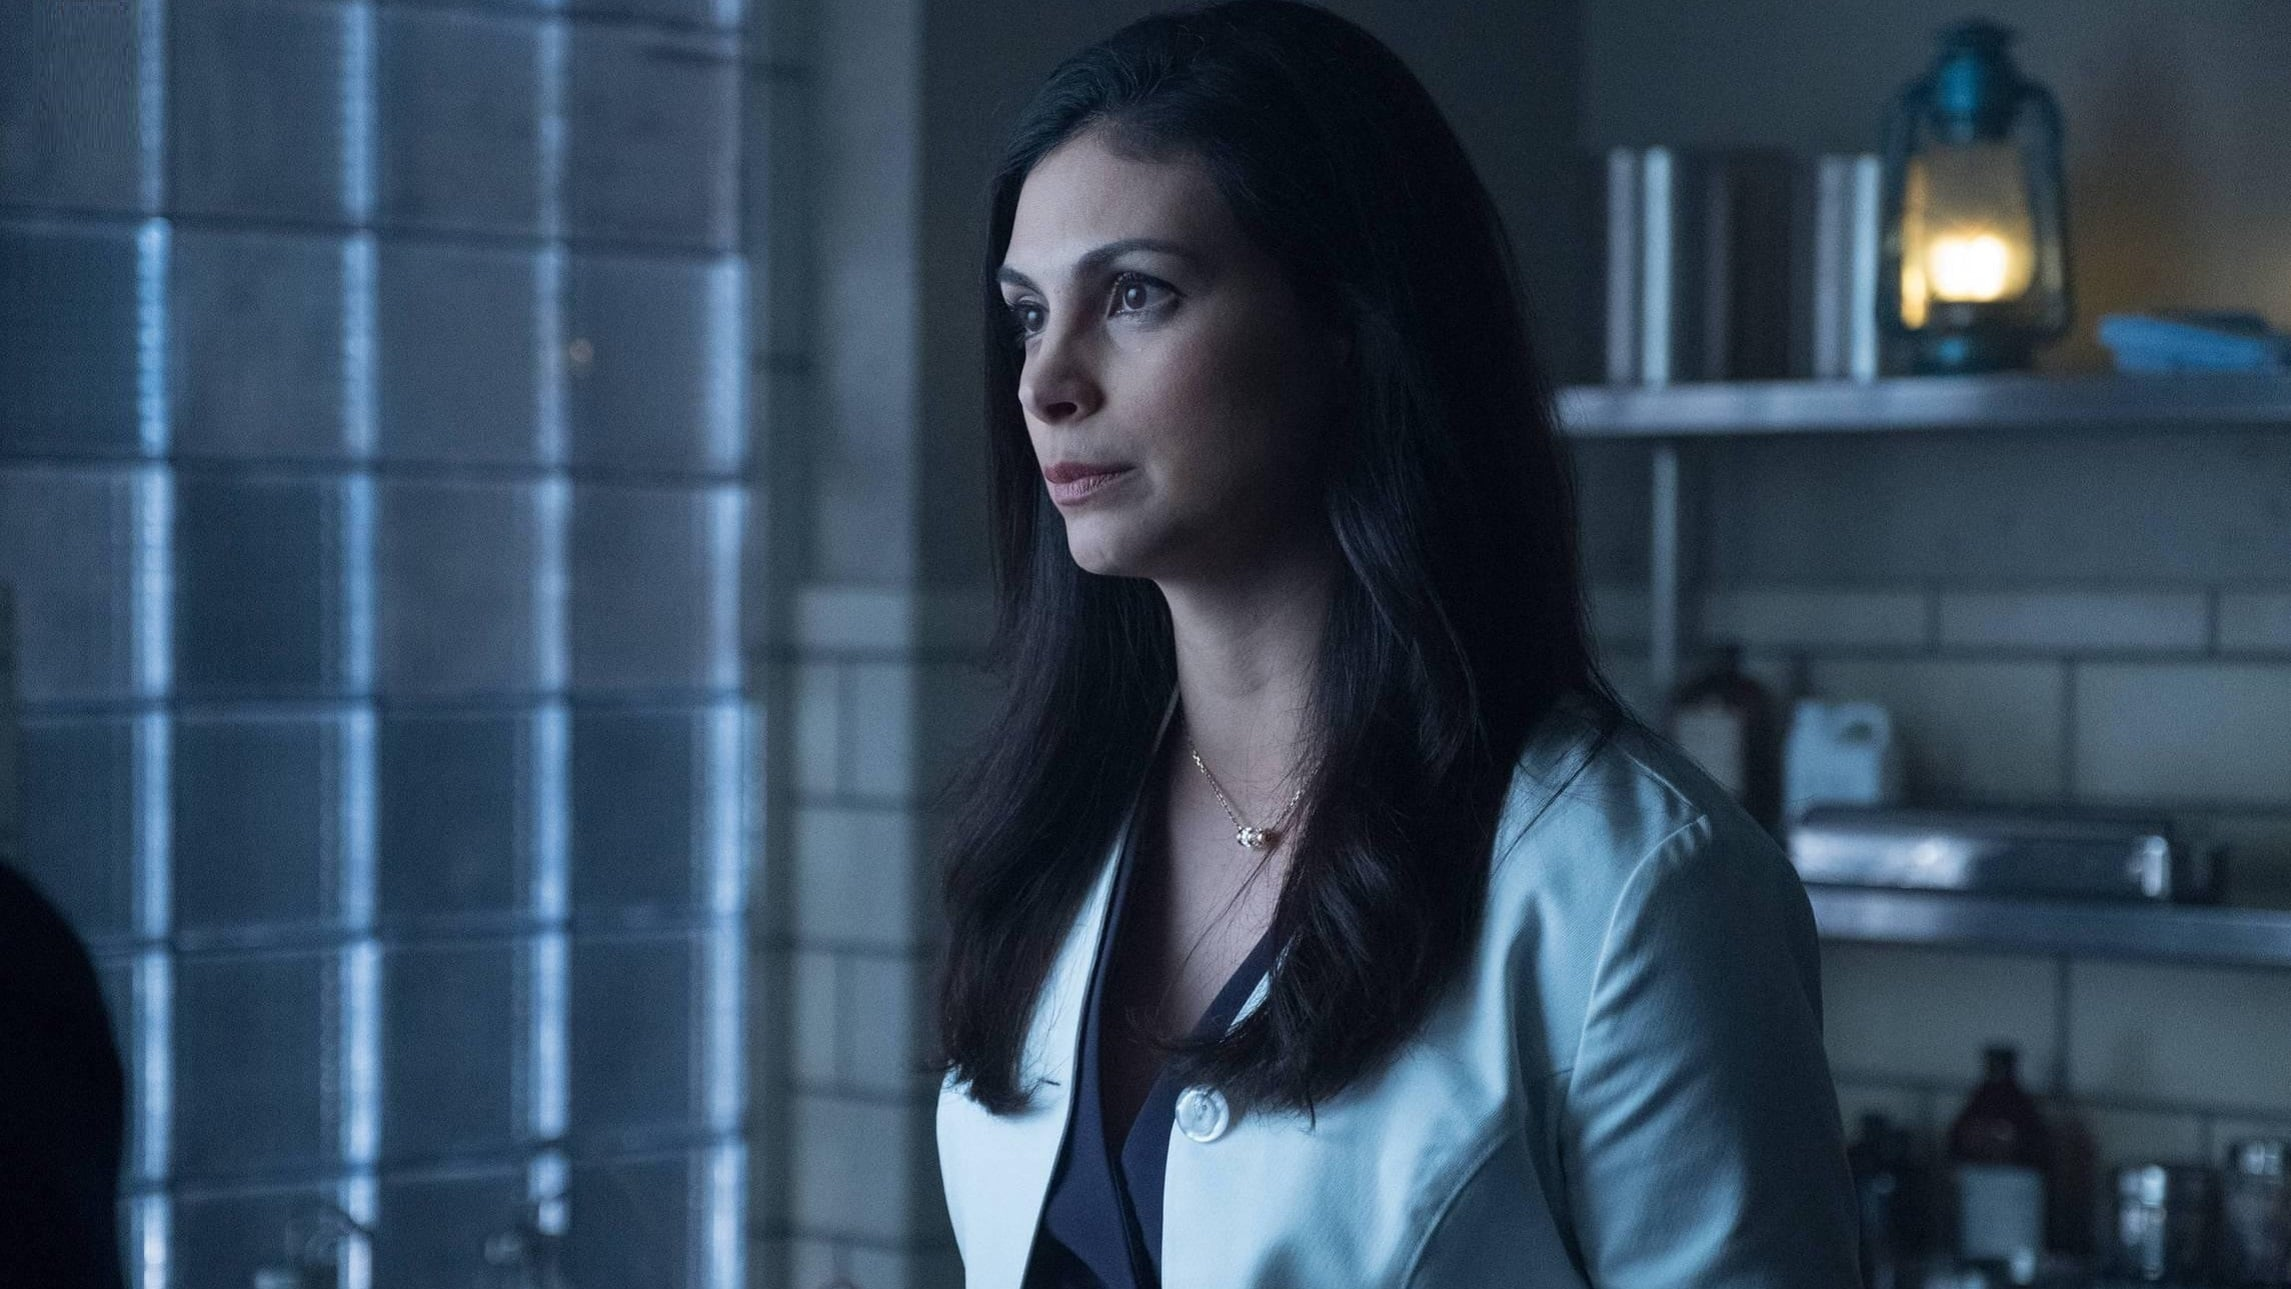 Gotham - Season 3 Episode 14 : Mad City: The Gentle Art of Making Enemies